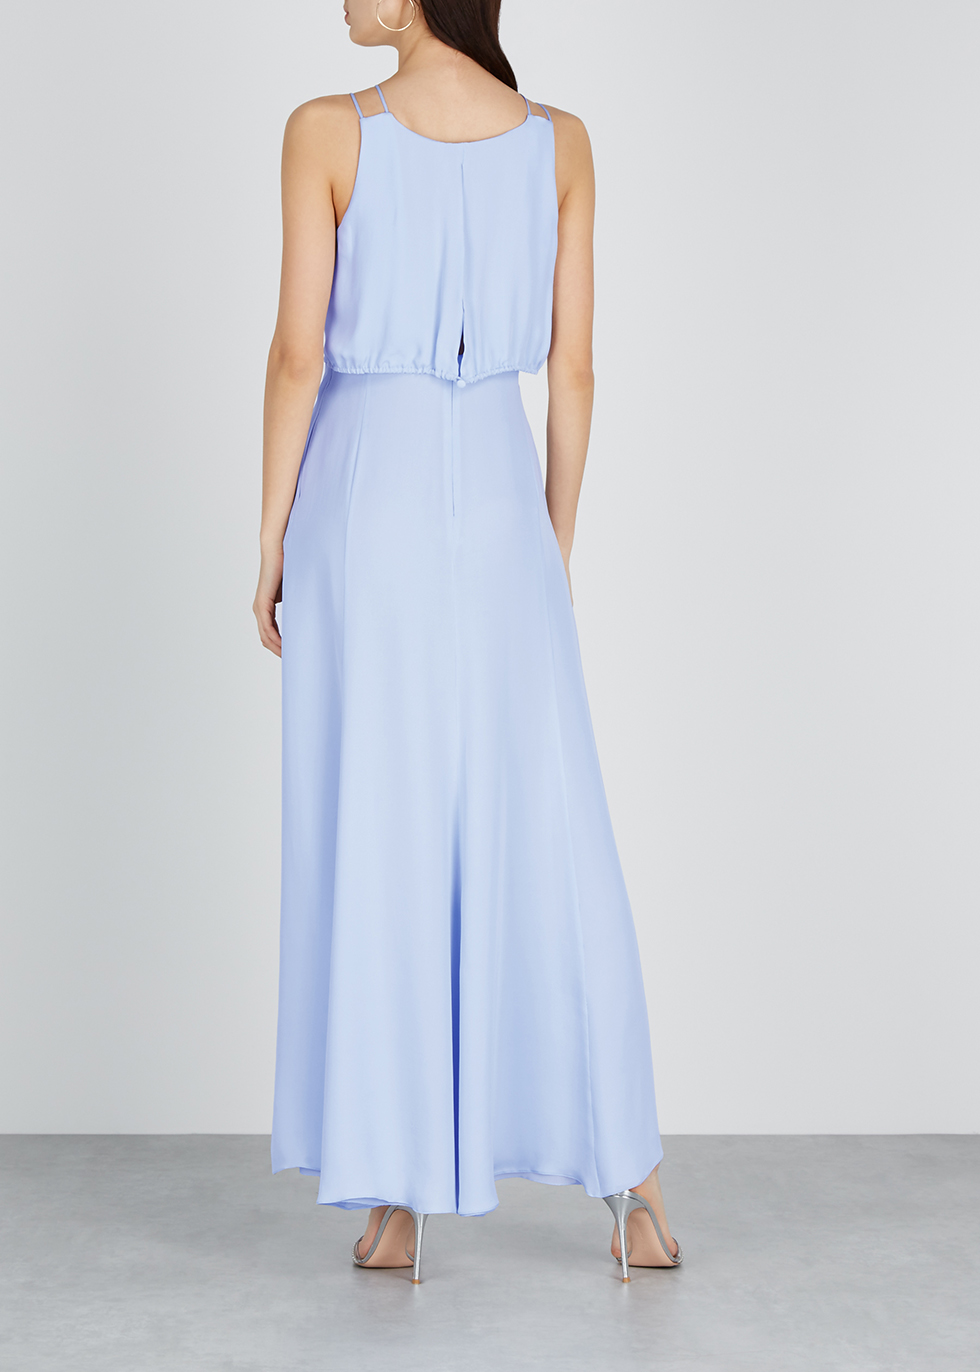 Light blue silk georgette maxi dress - Emporio Armani